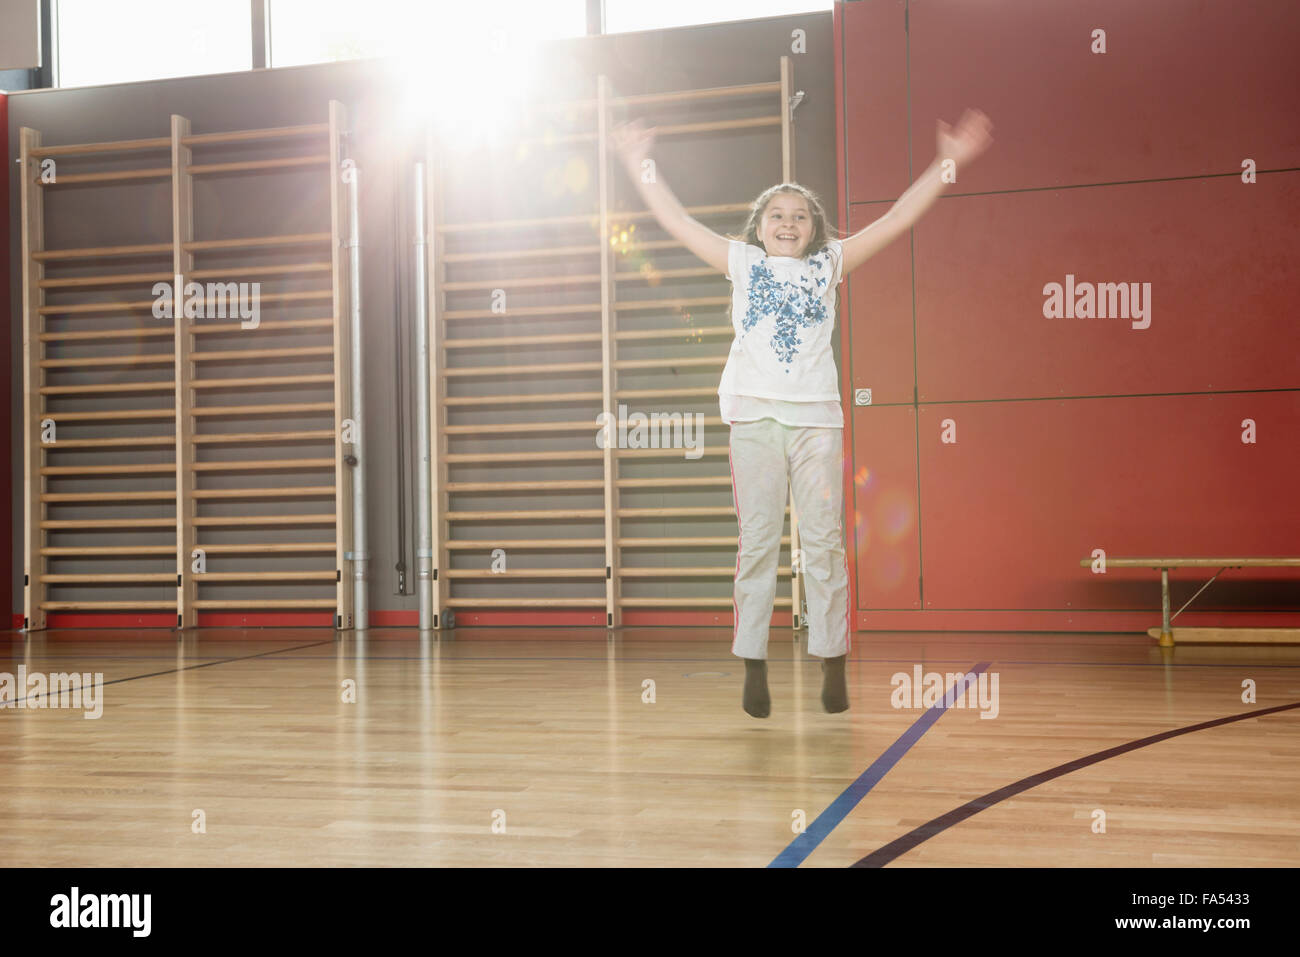 Cheerful small girl jumping in sports hall, Munich, Bavaria, Germany - Stock Image